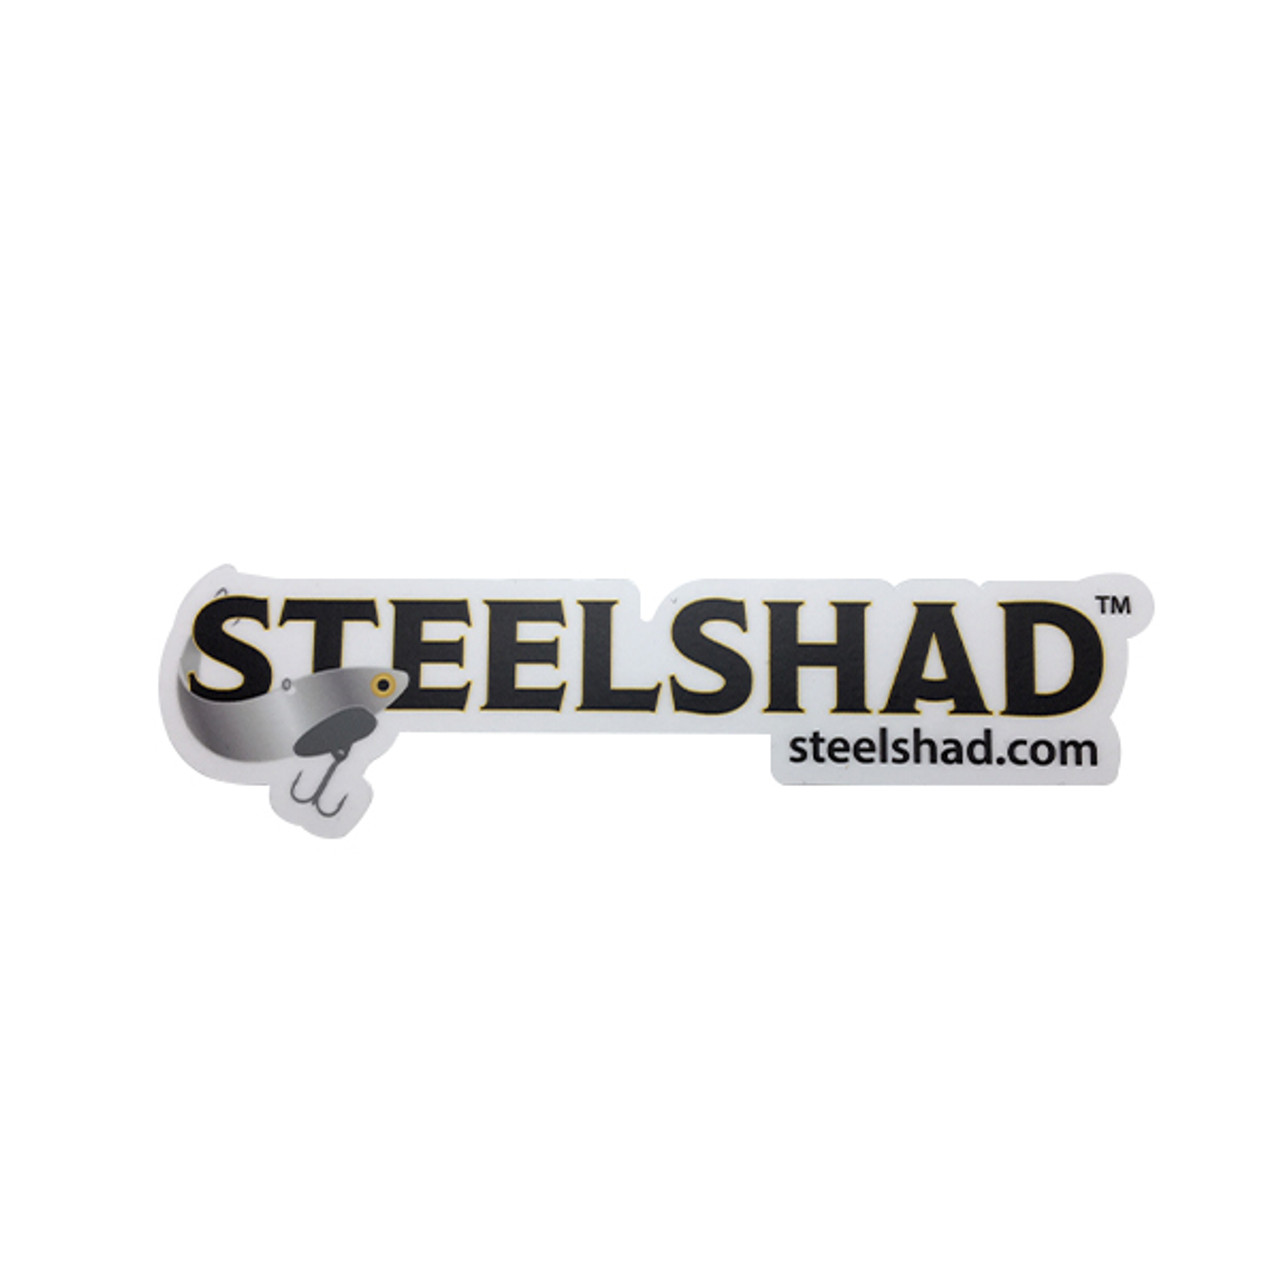 SteelShad Logo Sticker - Medium